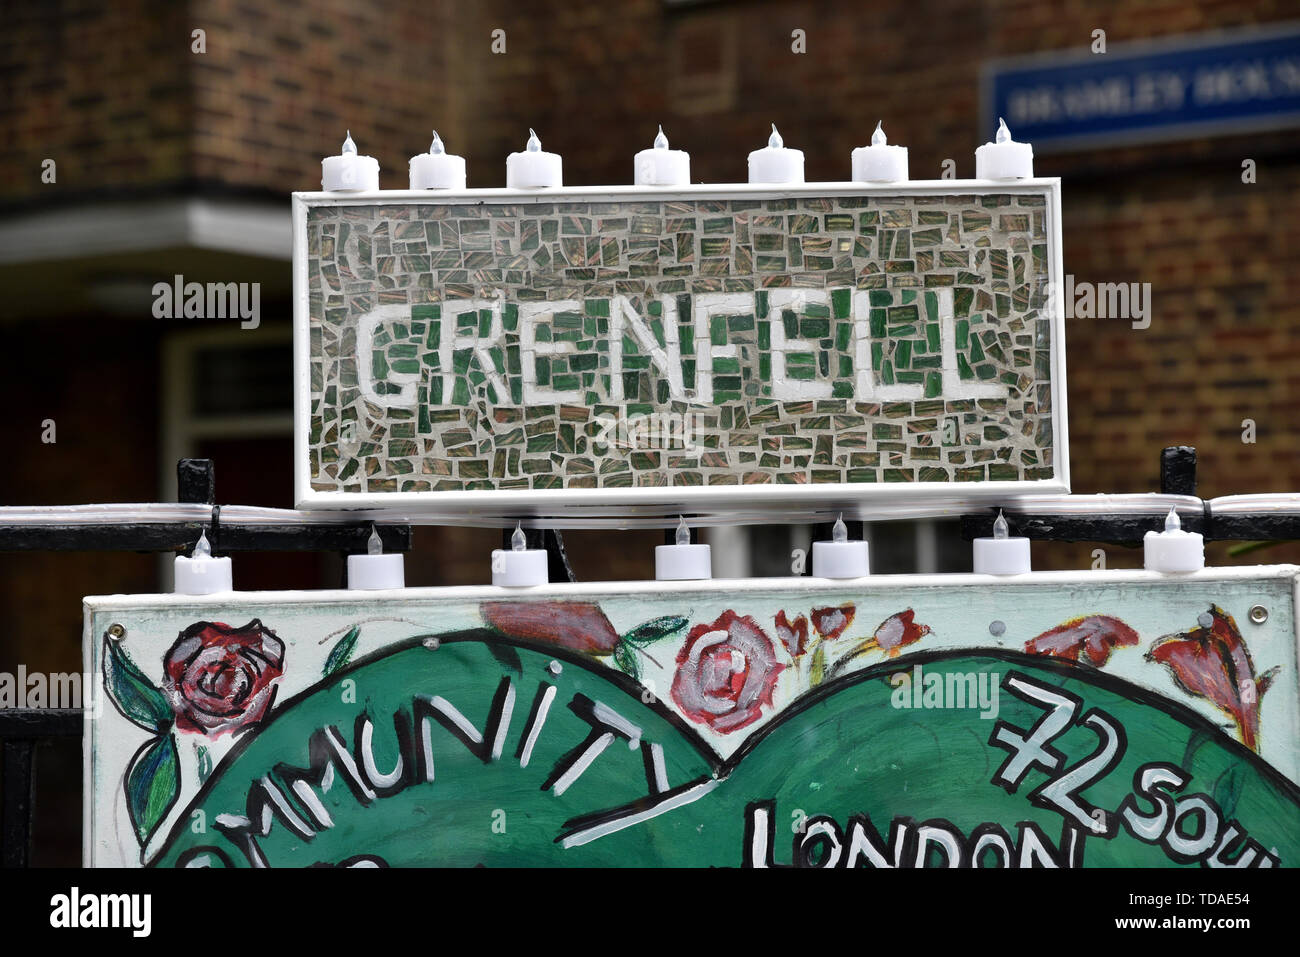 Grenfell Tower, London, UK. 14th June, 2019. The Grenfell Tower fire anniversary commemorations. Credit: Matthew Chattle/Alamy Live News - Stock Image